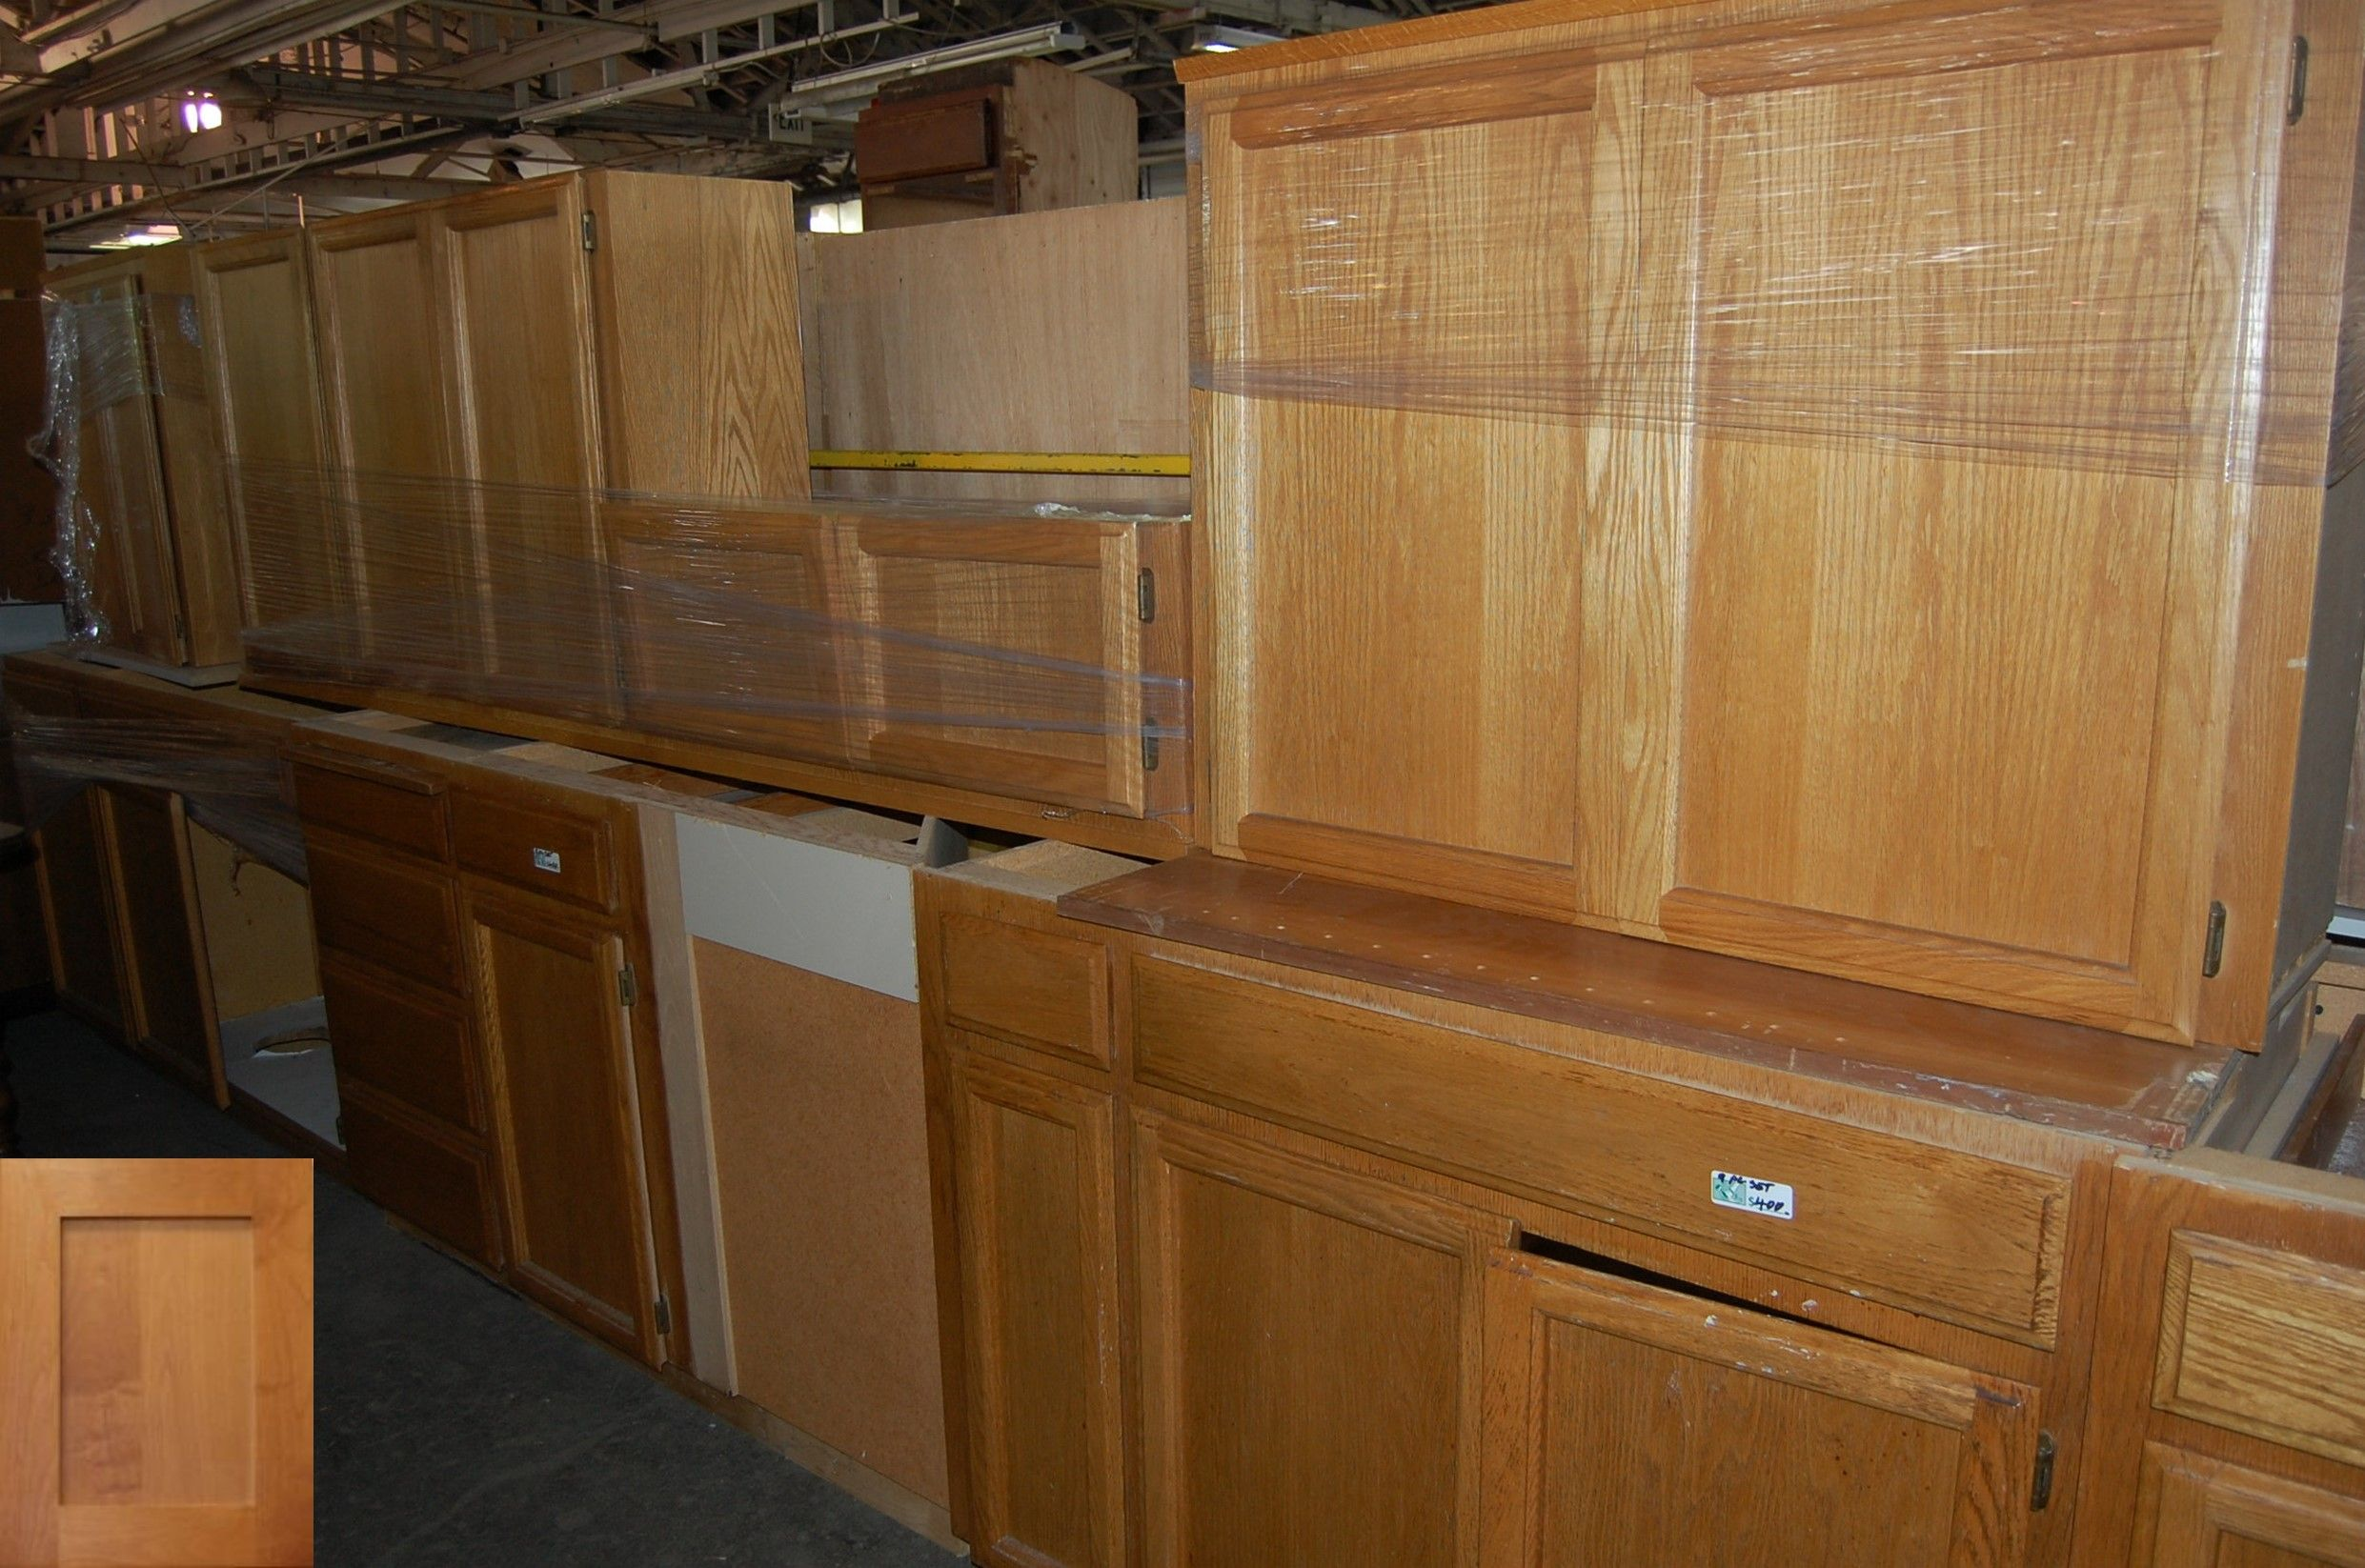 Ways To Update Old Kitchen Cabinets And Diy Kitchen Cupboards In South Africa Awesome Diy Kitchen Cupboards Diy Kitchen Cabinets Kitchen Cabinets